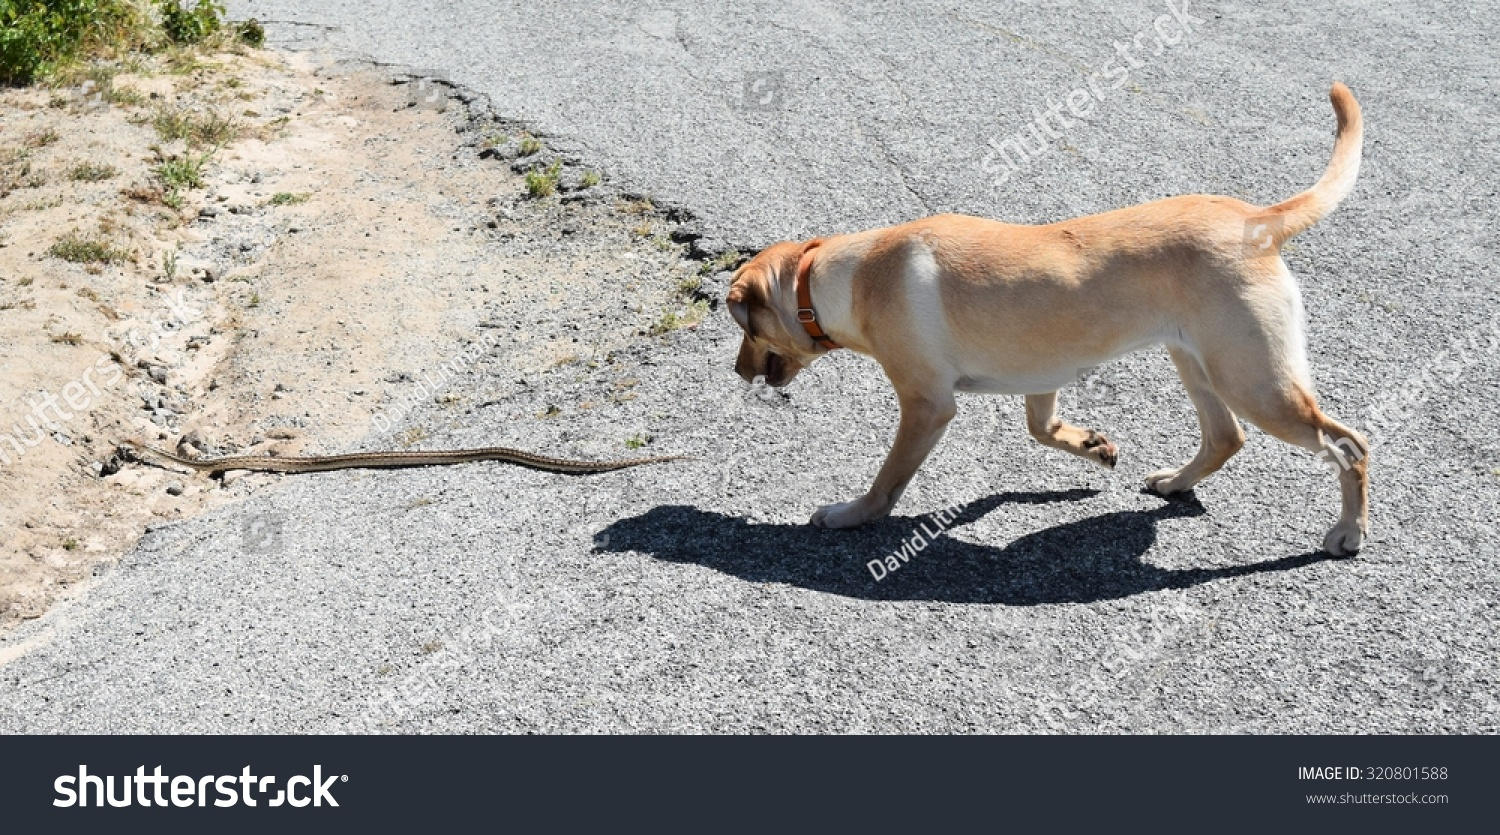 Dog chases snake: A yellow Labrador (lab) retriever chases a gopher snake in the hills of Monterey, in central California (United States).